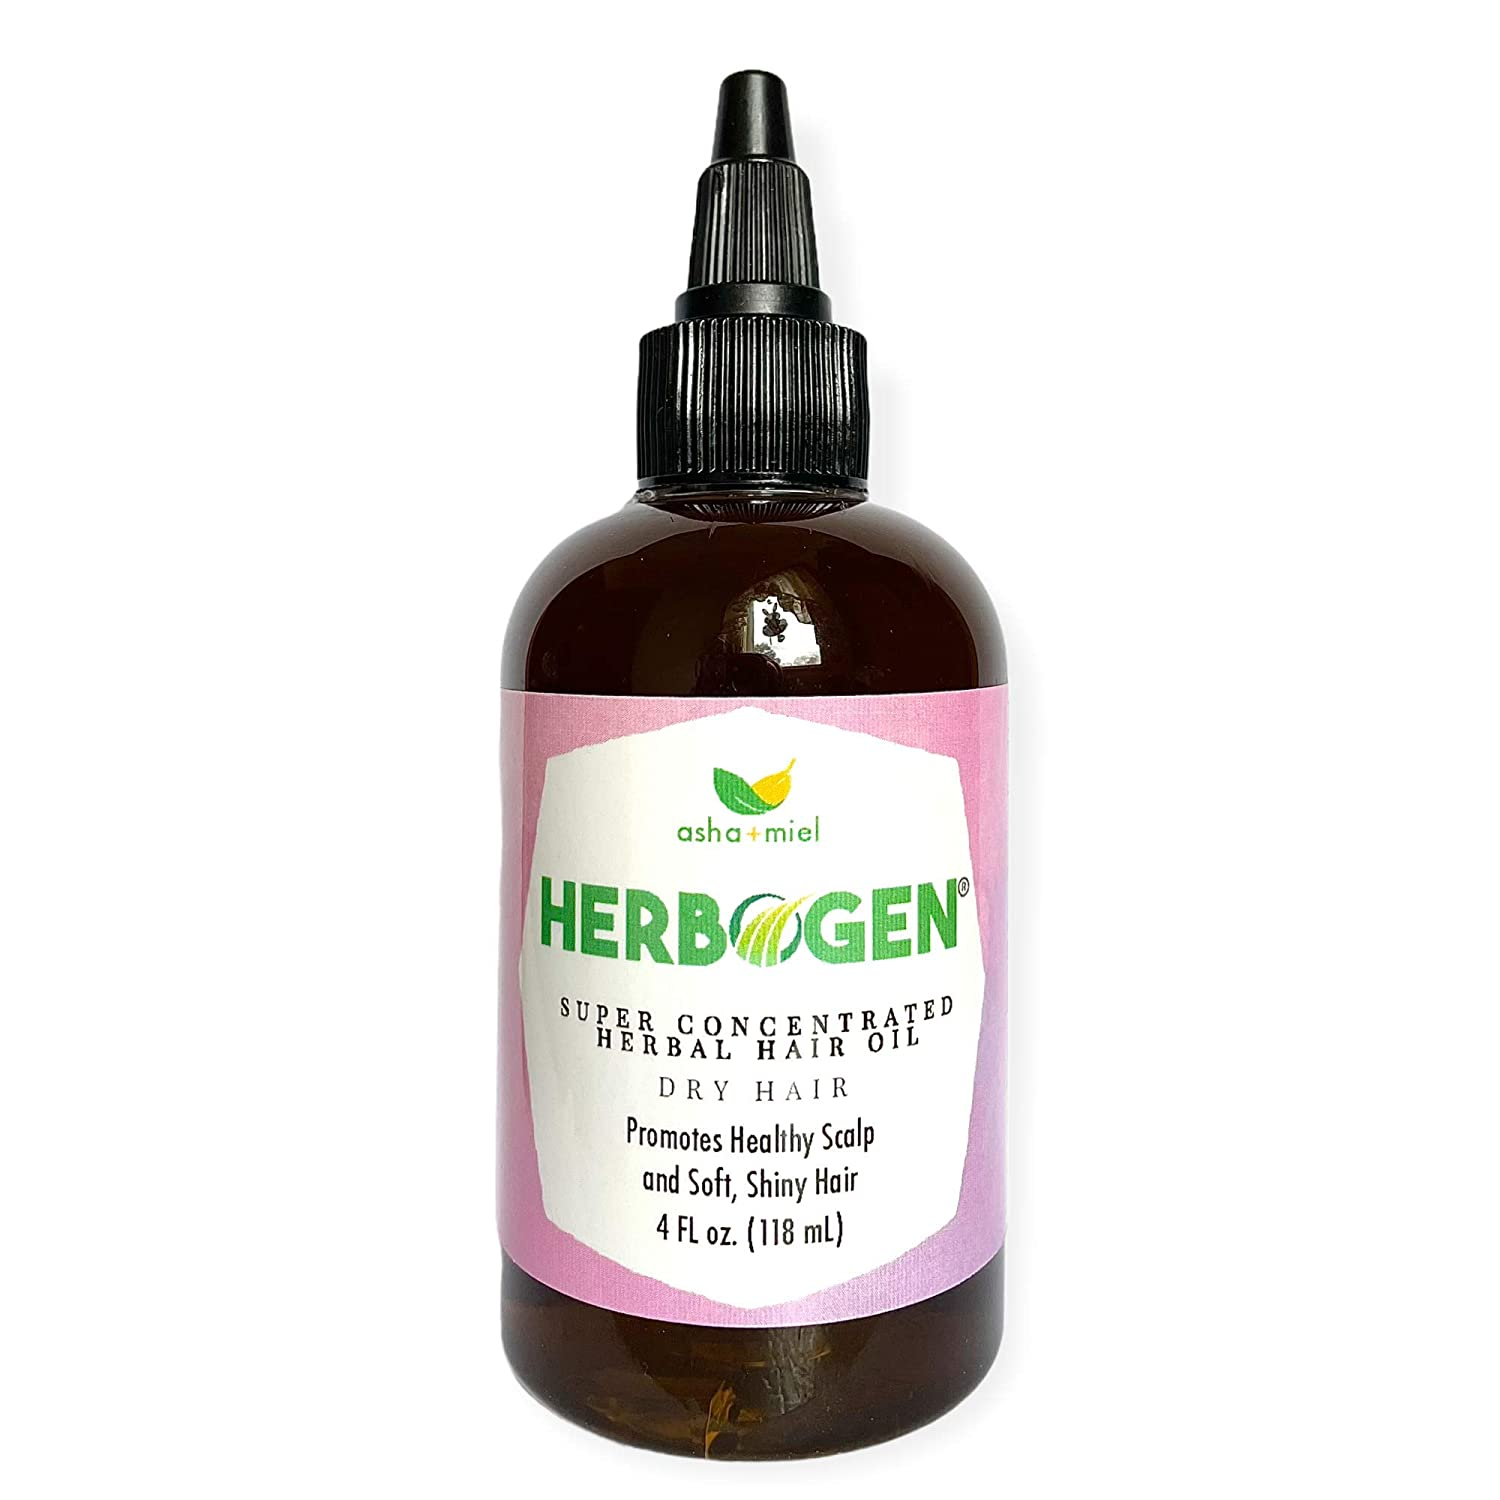 Super Concentrated Herbal Hair Oil Growth Herbs 26 Purchase oil Serum lowest price